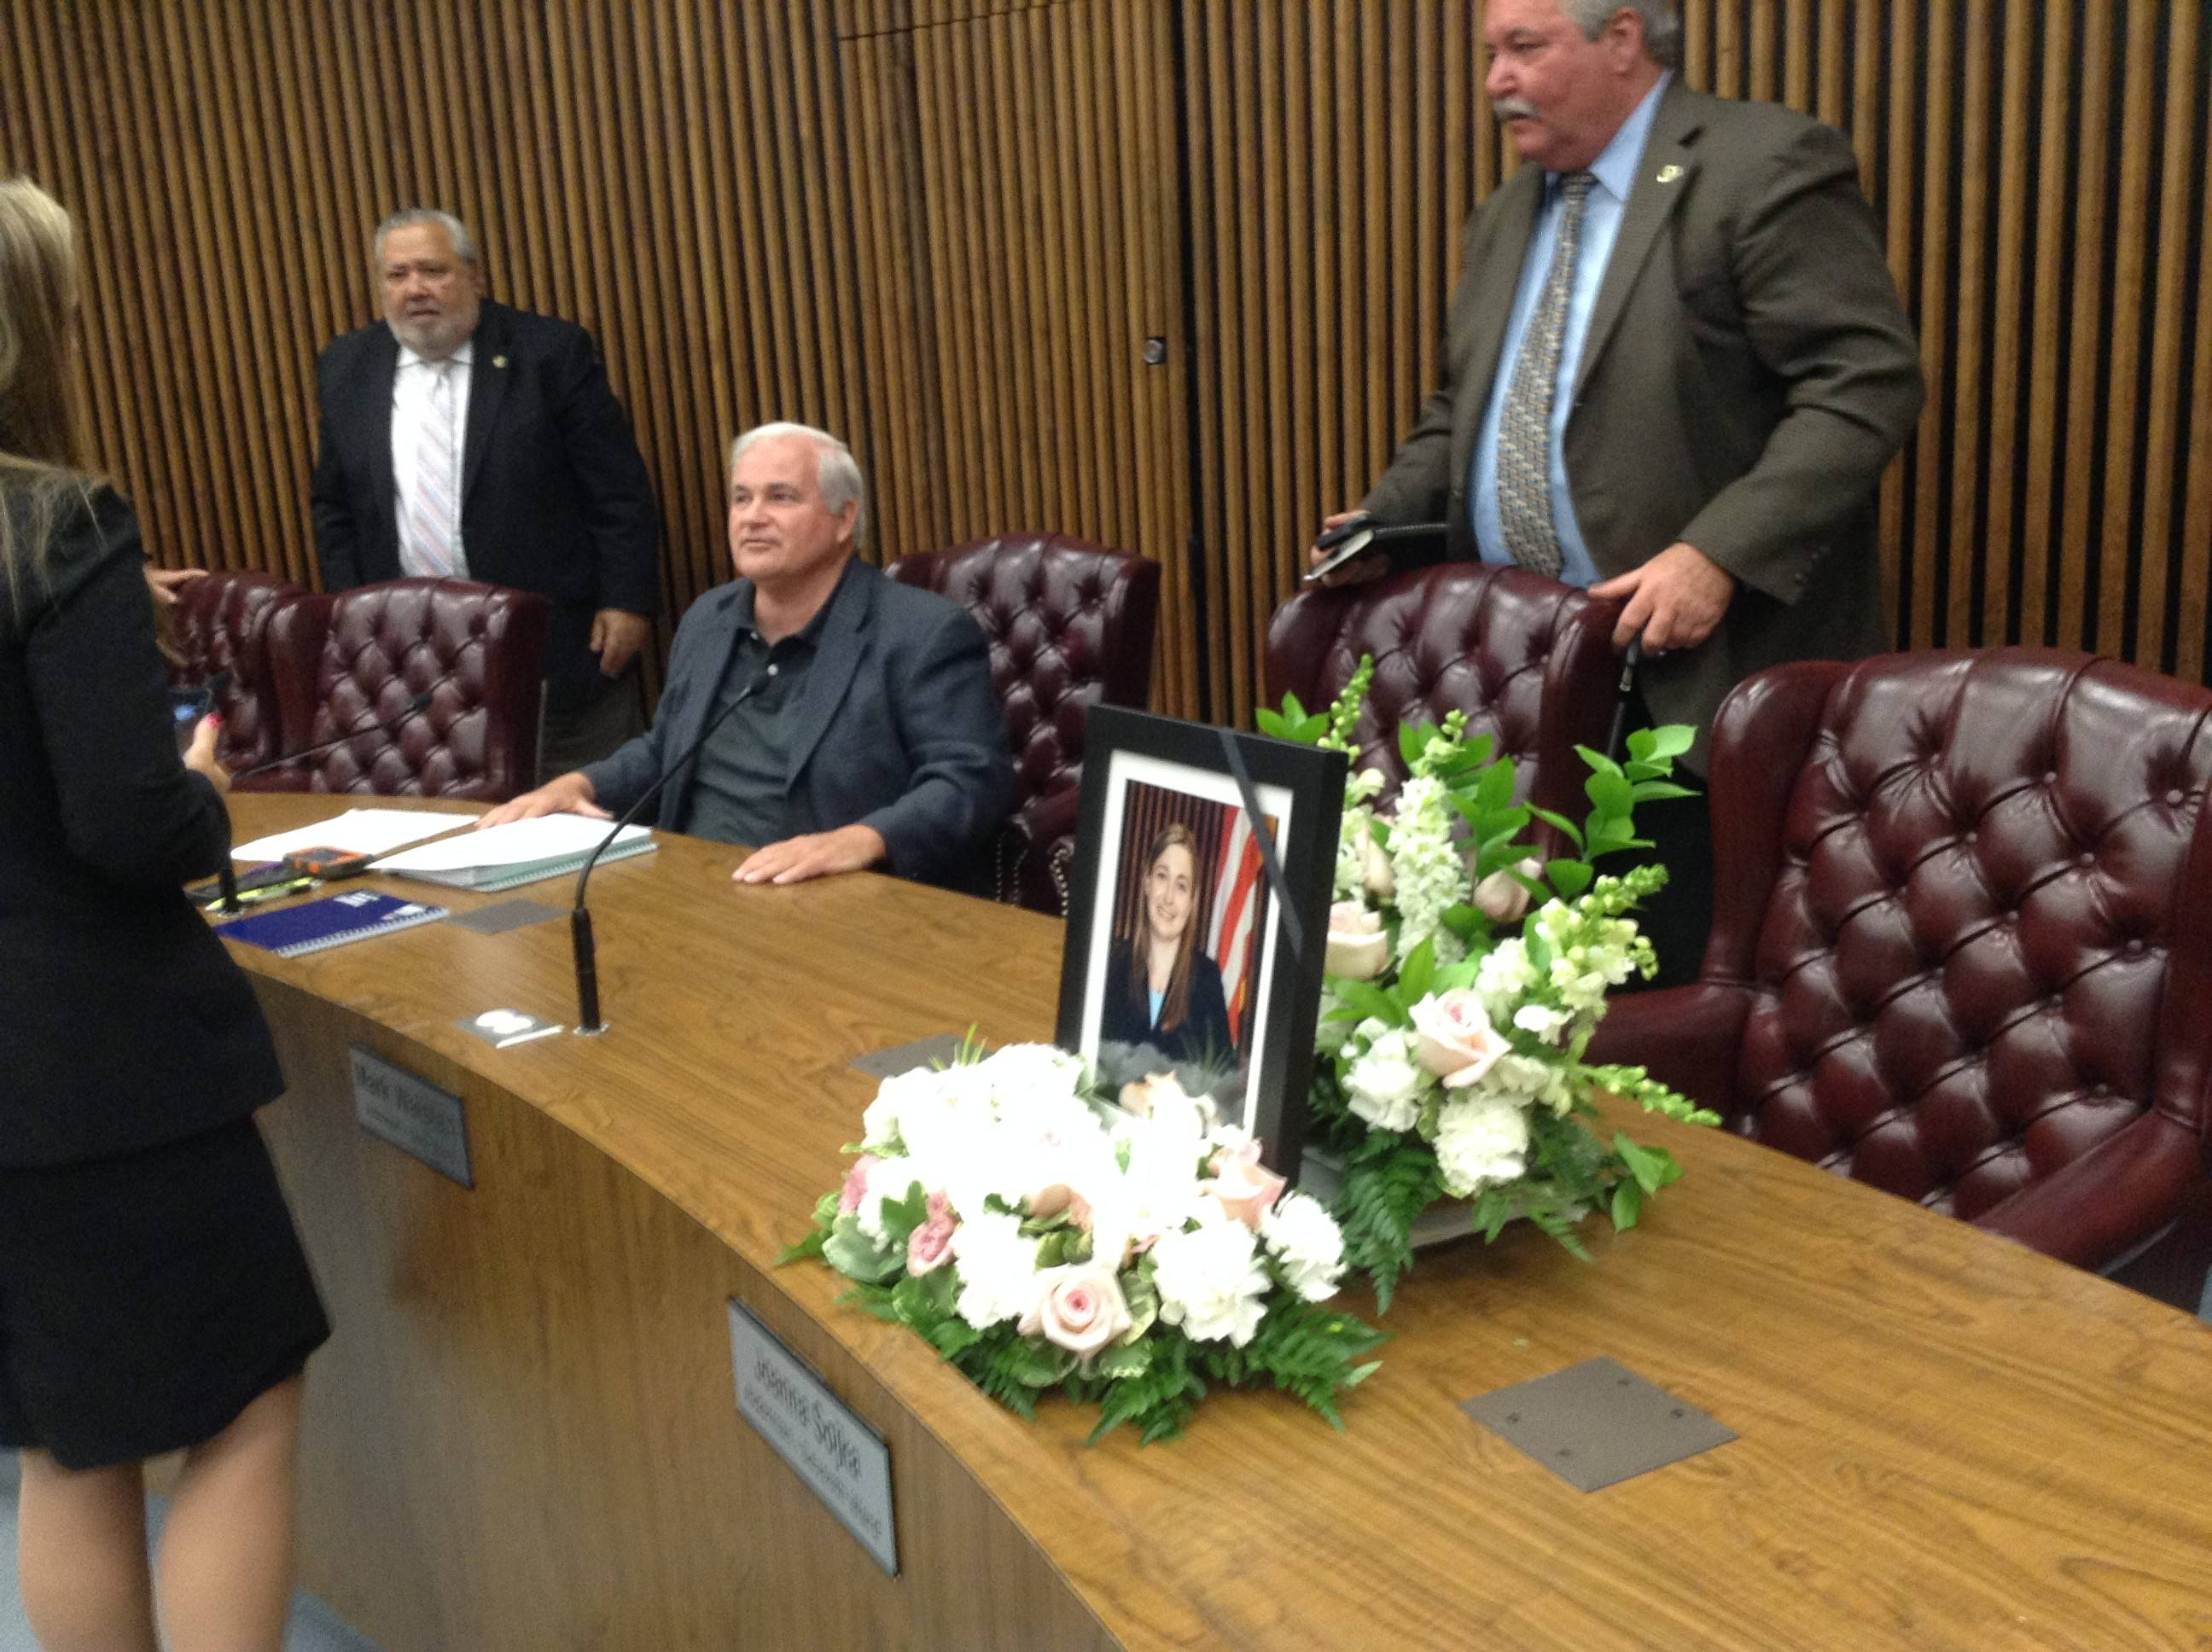 A picture and flowers honoring the late Des Plaines Alderman Joanna Sojka, who died Aug. 18 of an apparent stroke, was placed on the city council dais Tuesday night.